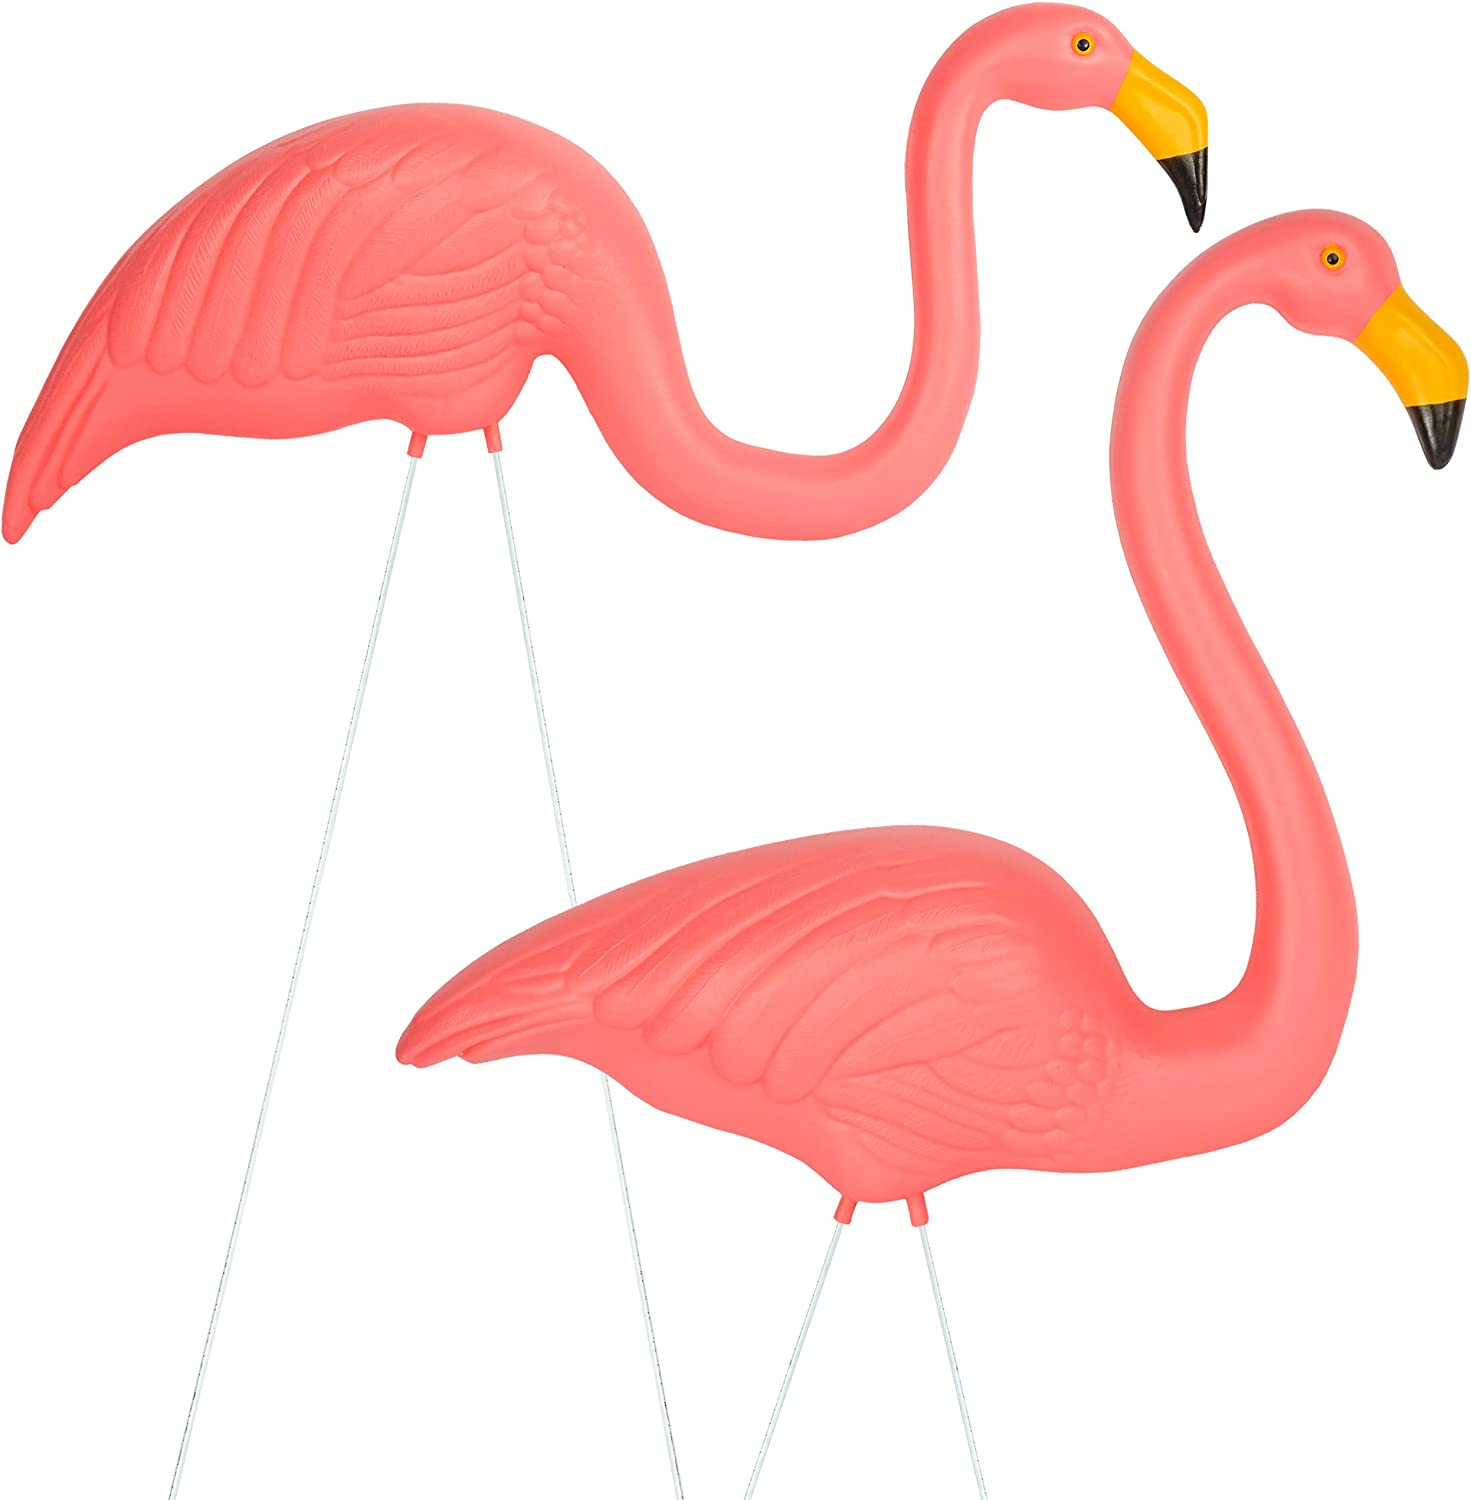 Galashield Pink Flamingo Yard Ornaments Pack of 2 Pink Flamingos Lawn Decor for Garden